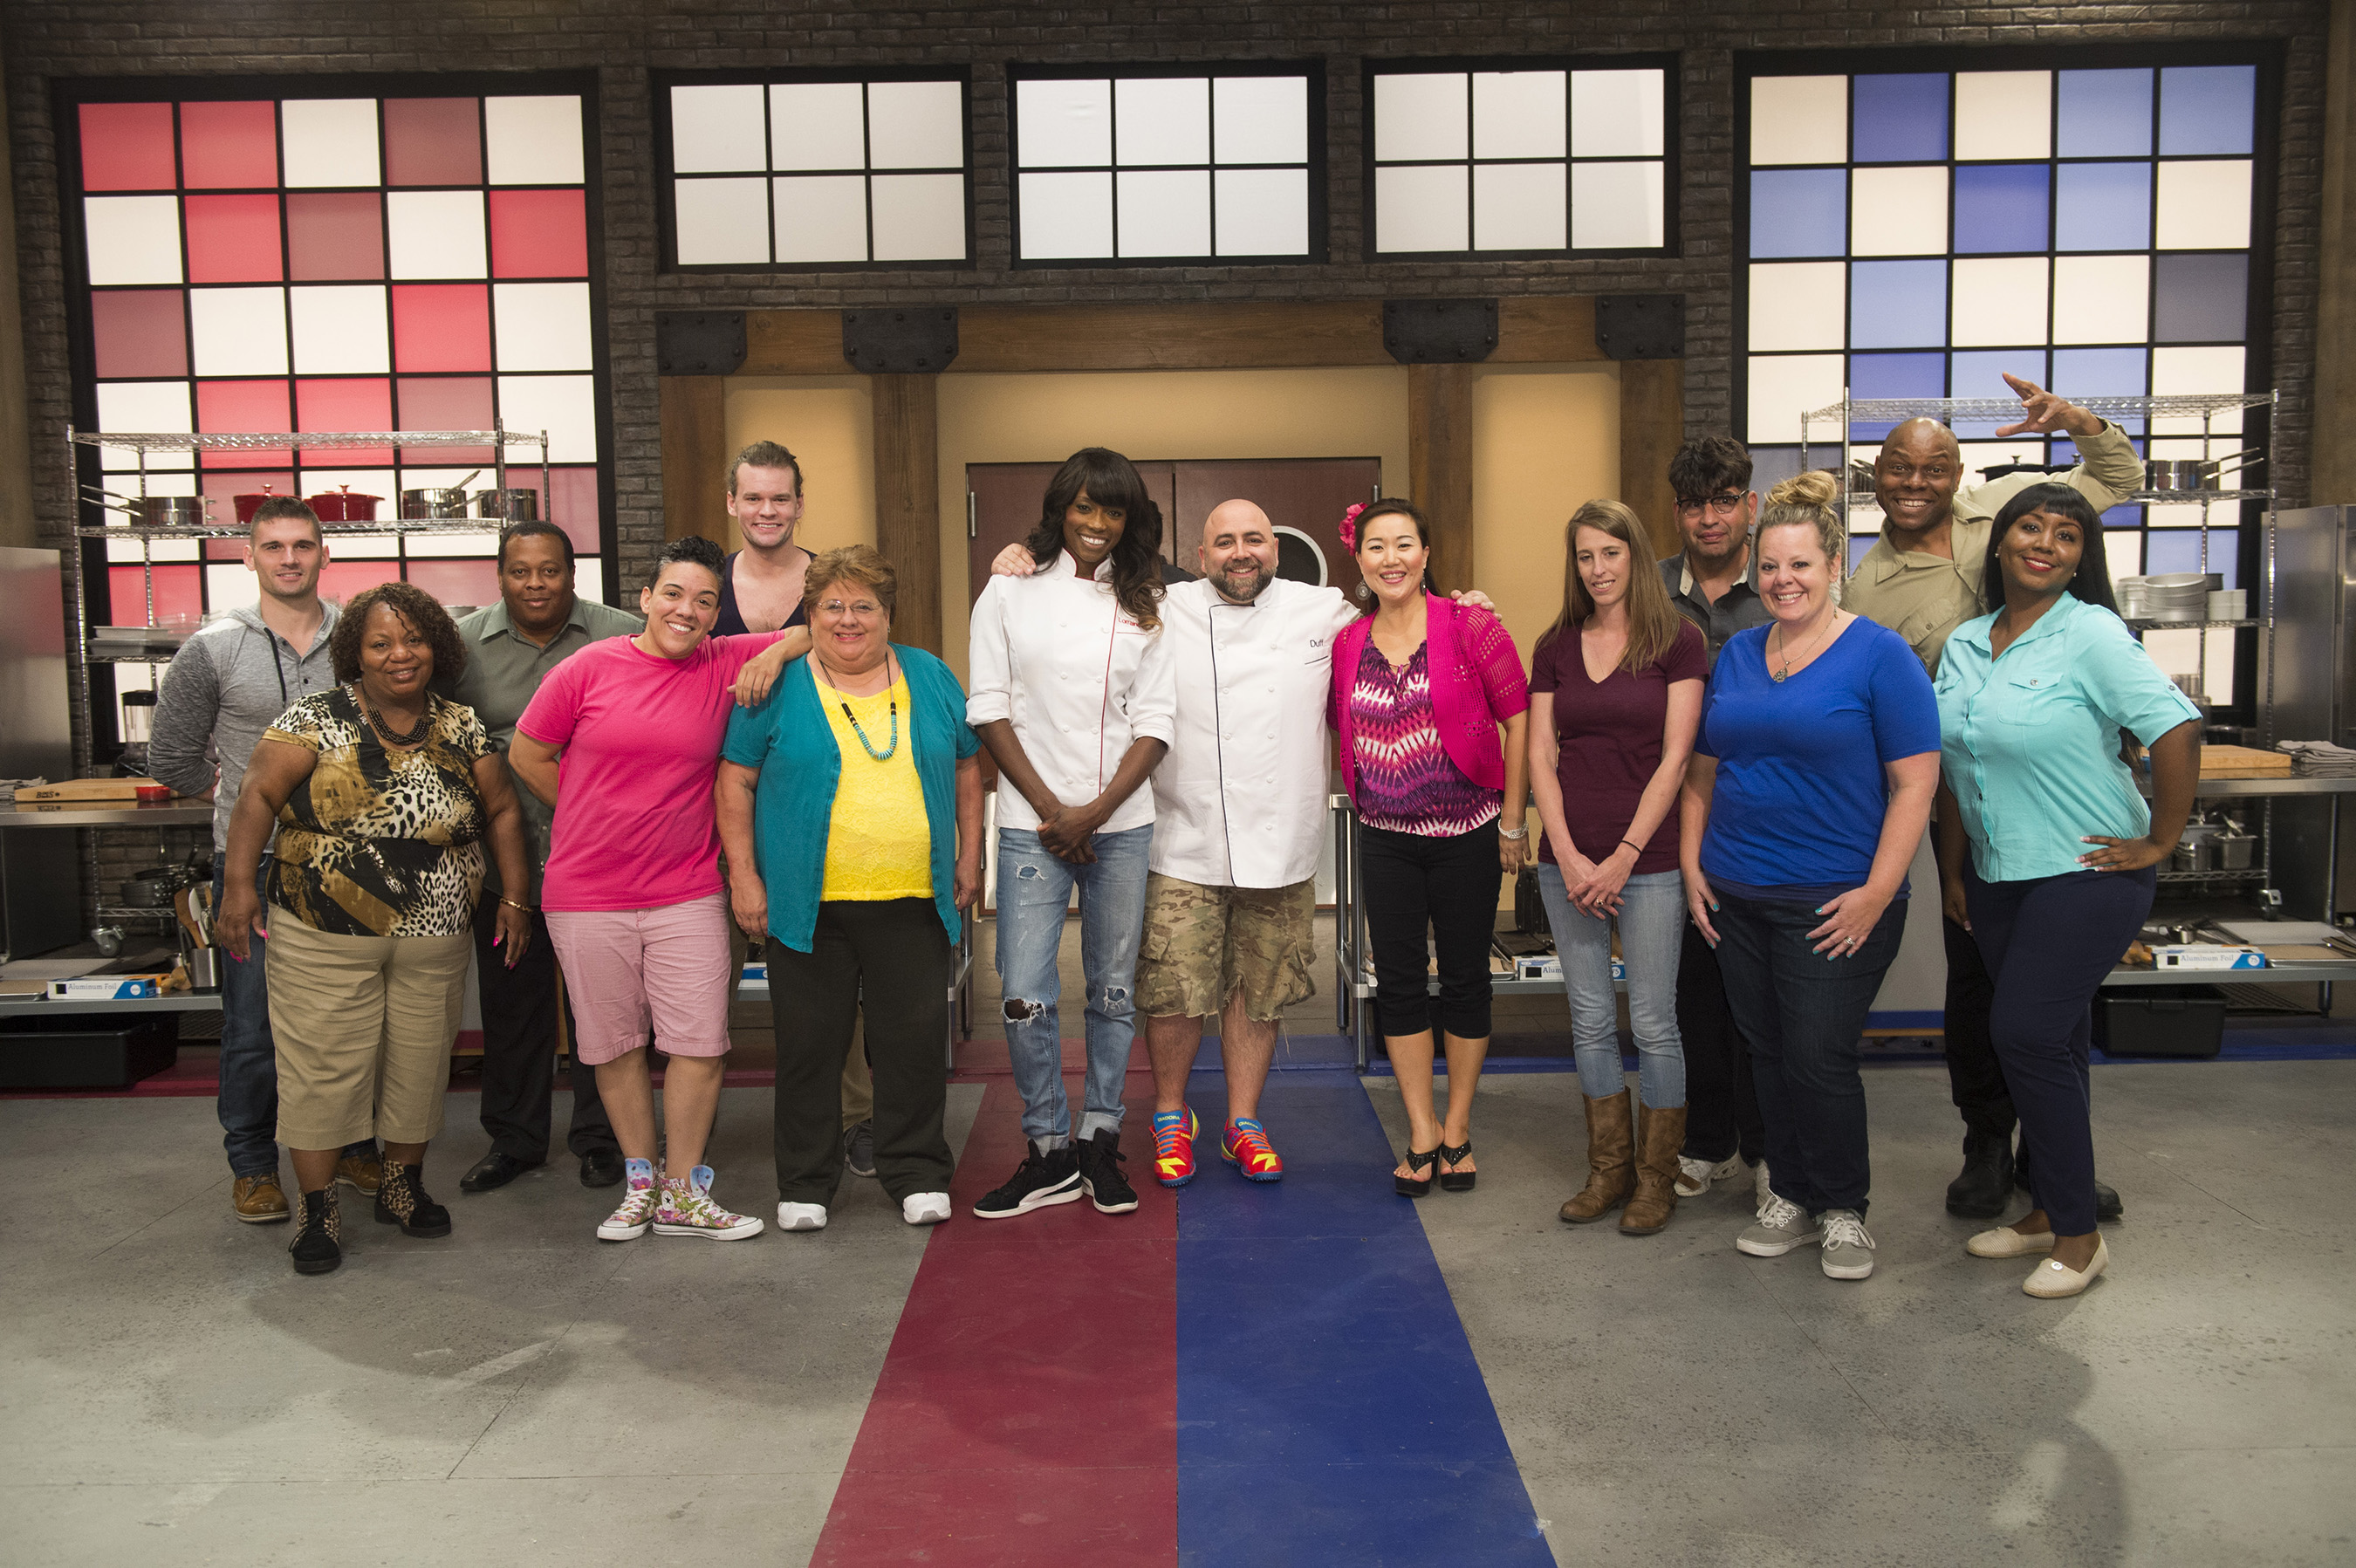 Hosts Duff Goldman and Lorraine Pascale with competitors (left to right) Ryan Neiman, Carla Johnson, Anthony Lee, Shante Randolph, Jesse Wyum, Judy Welch, Lizzy Lu, Samantha Brown, David Rosenberg, Stephanie Garcia, Carey Westbrook, and Kimberly Worthy on Food Network's Worst Bakers in America